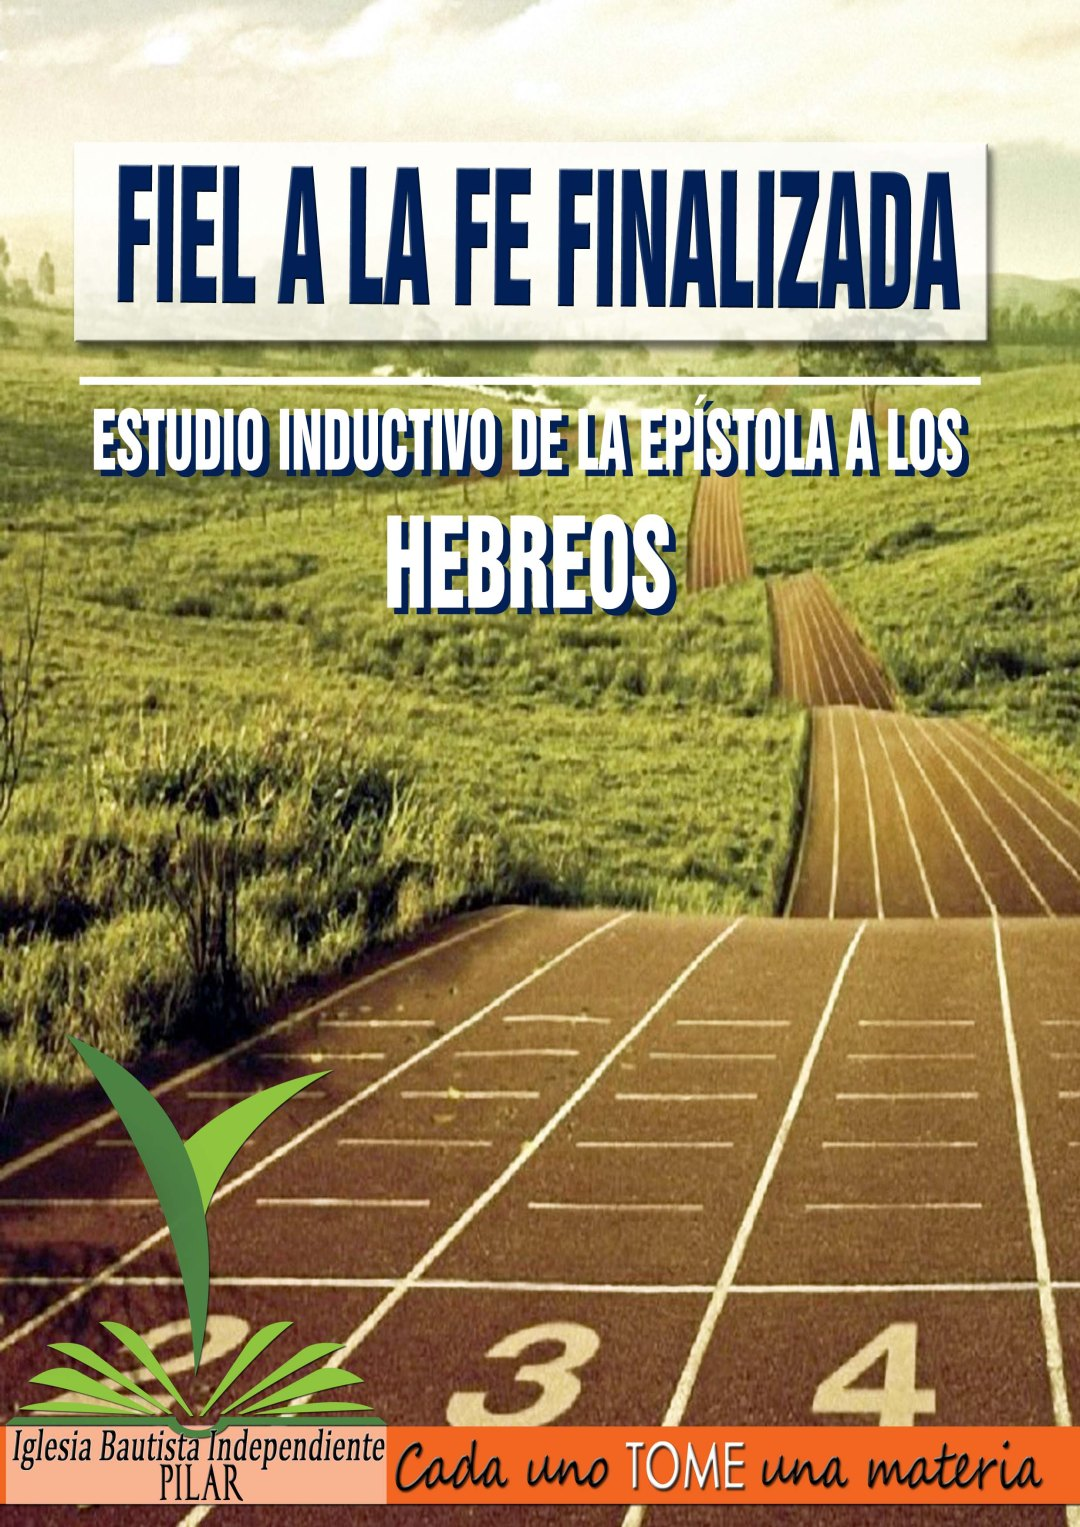 hebreos tapa copy